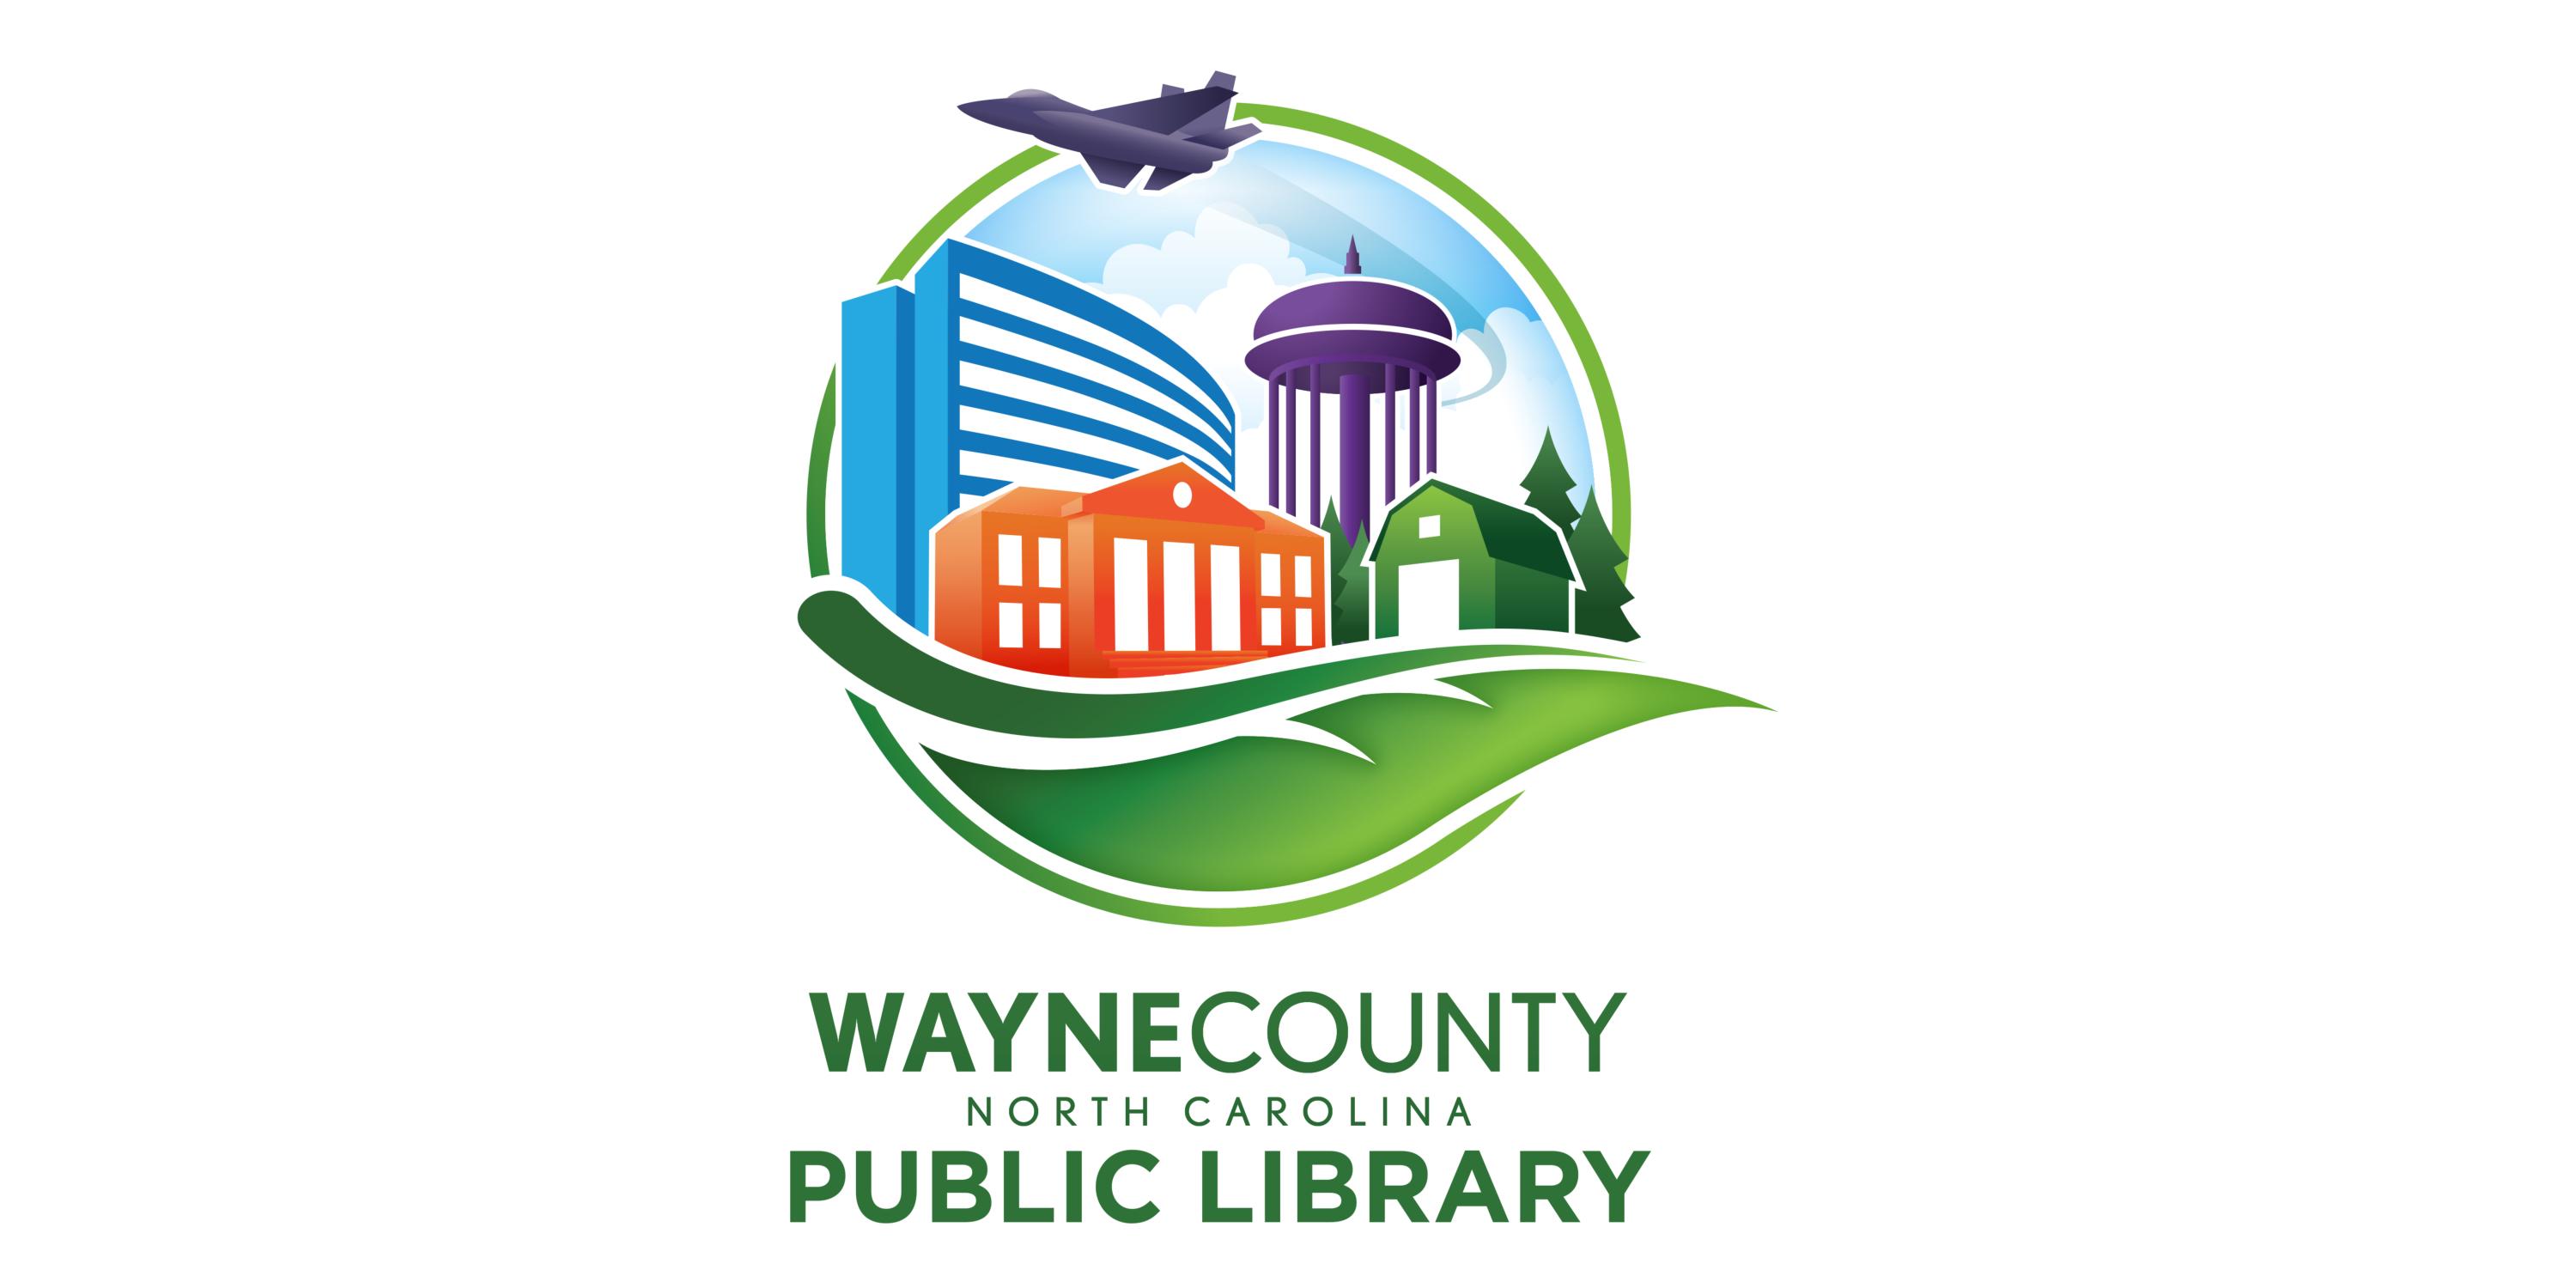 LaunchGoldsboro Partner North Carolina Wayne County Public Library